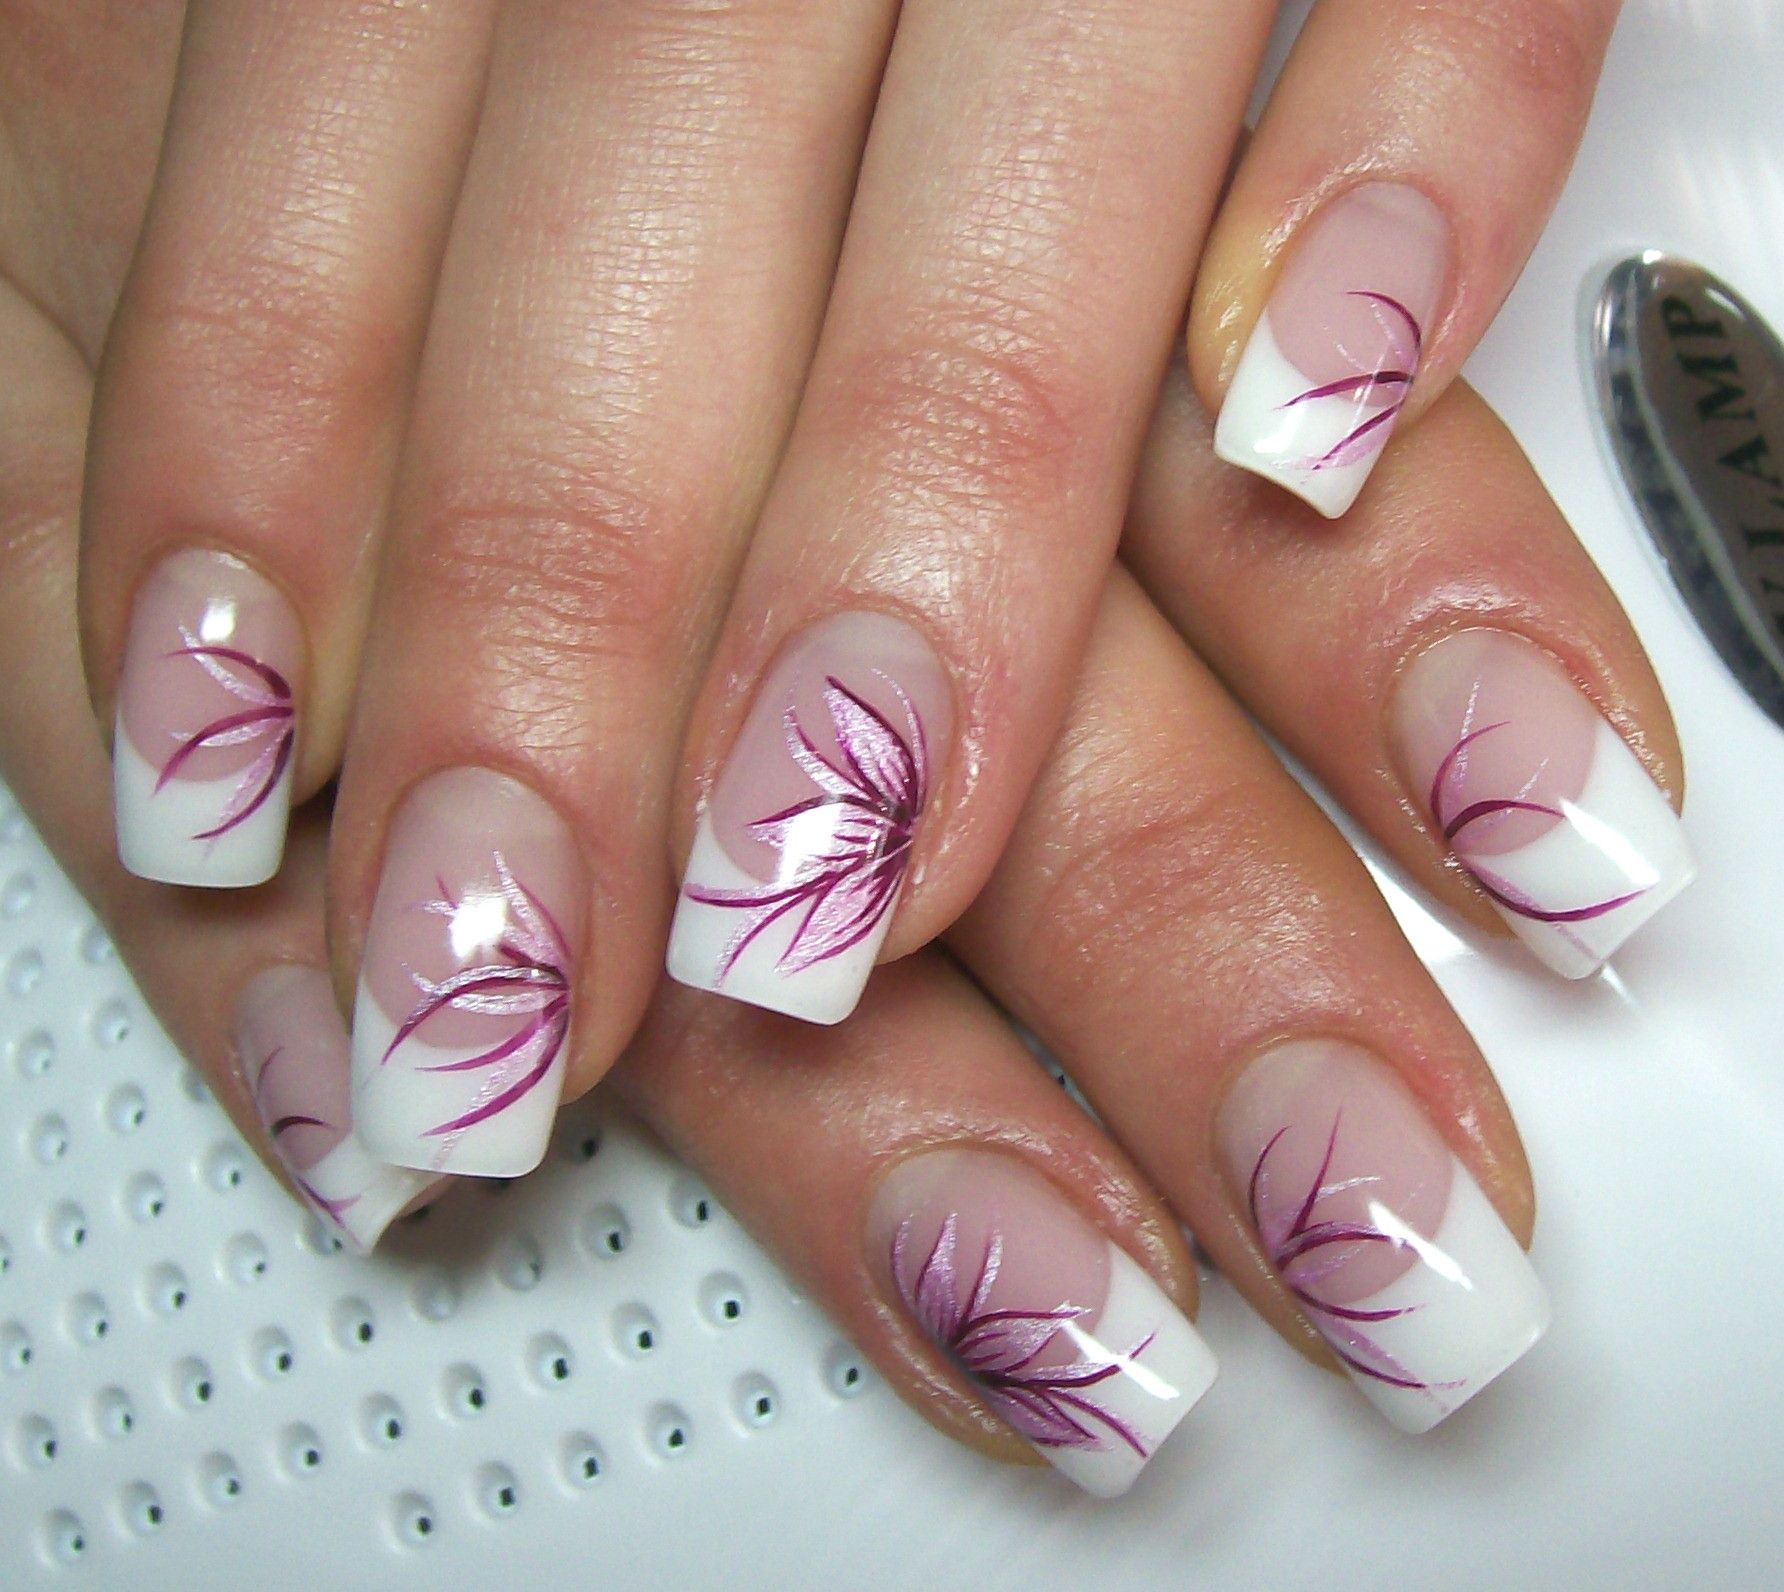 Nageldesign french | nageldesign | Pinterest | Nageldesign french ...